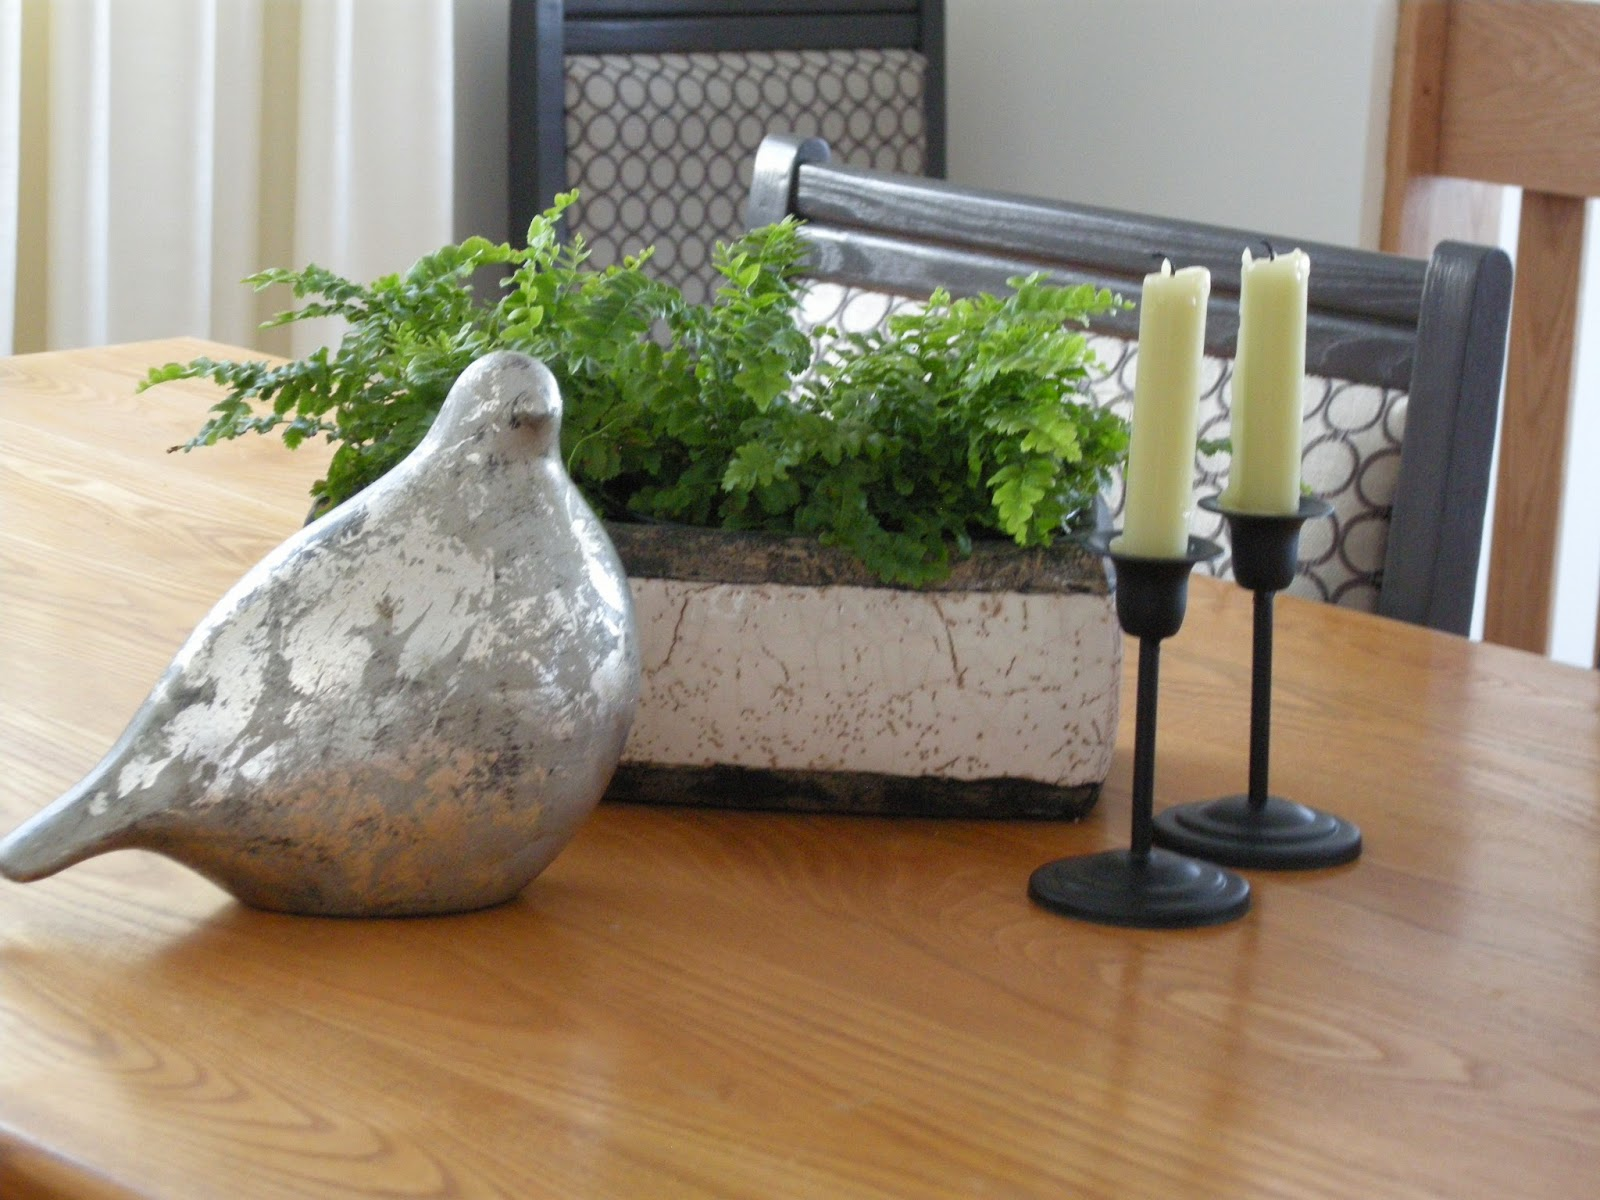 silver leaf bird, candles, boston ferns, trough planter, dining table, centrepiece